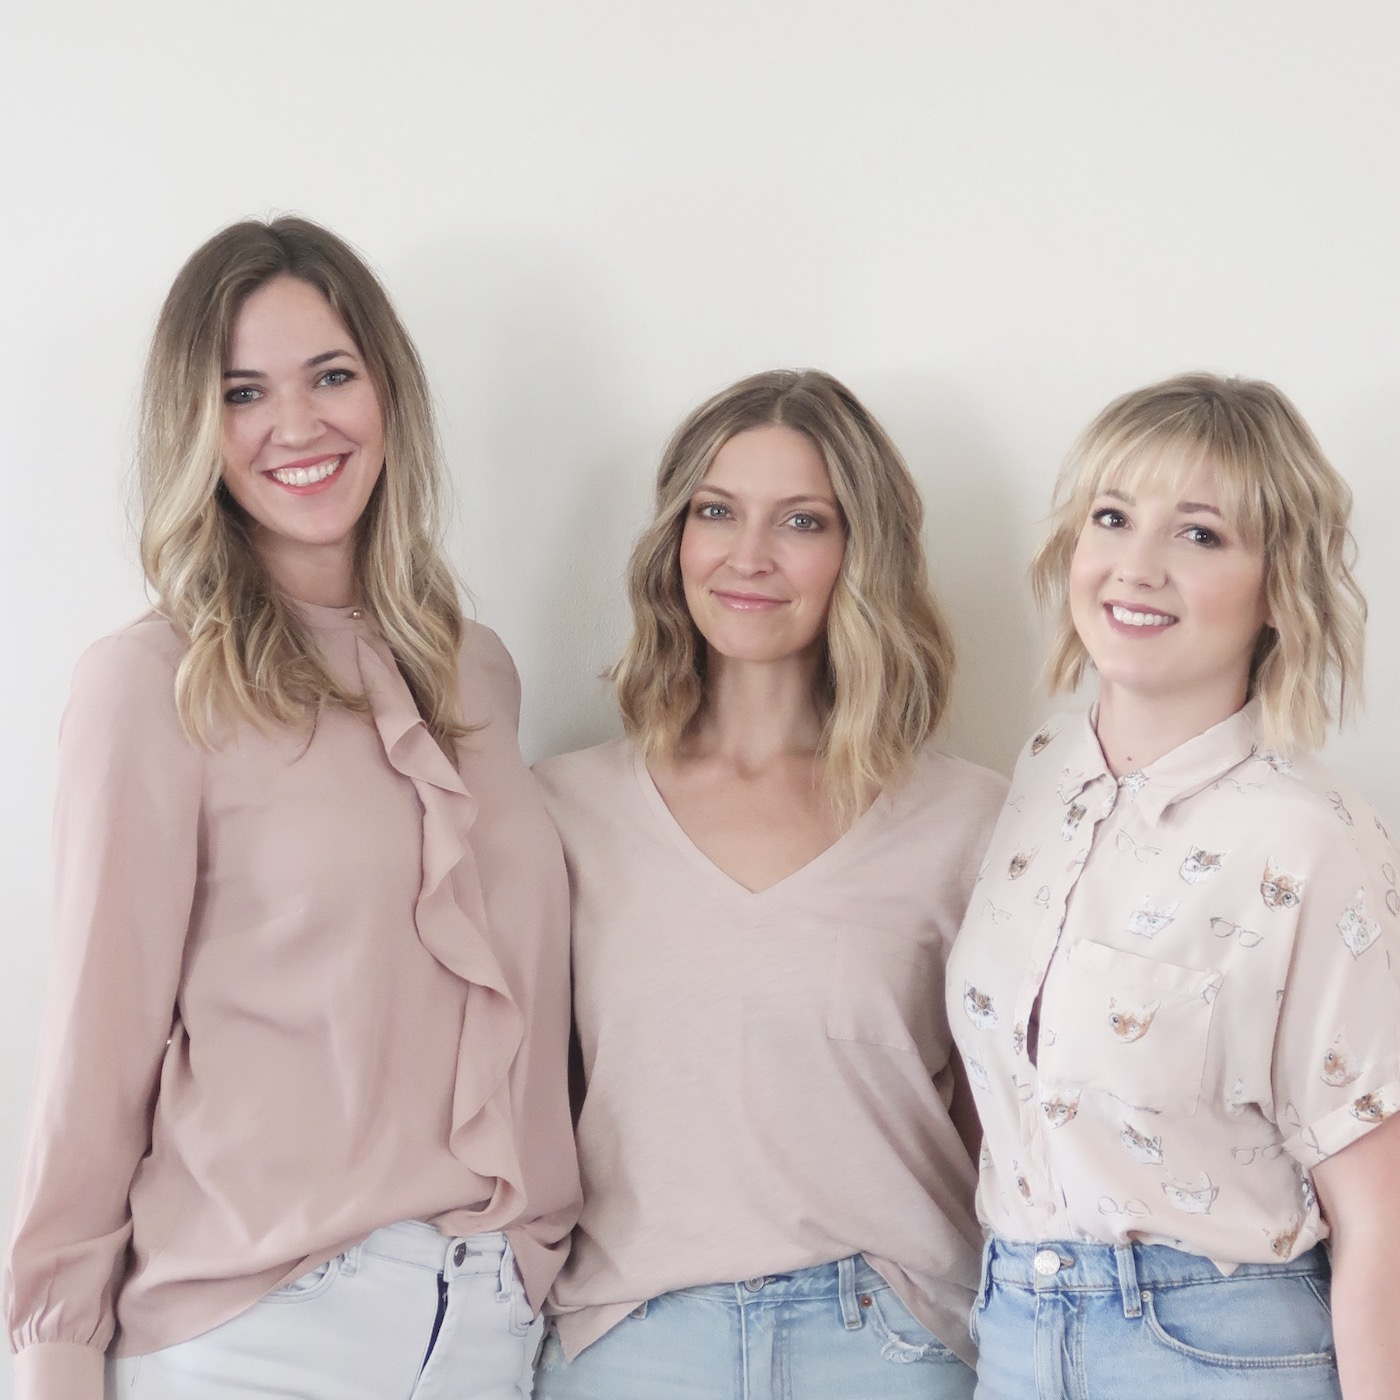 The Mane Event - Get to know your hair and how to style it for spring!